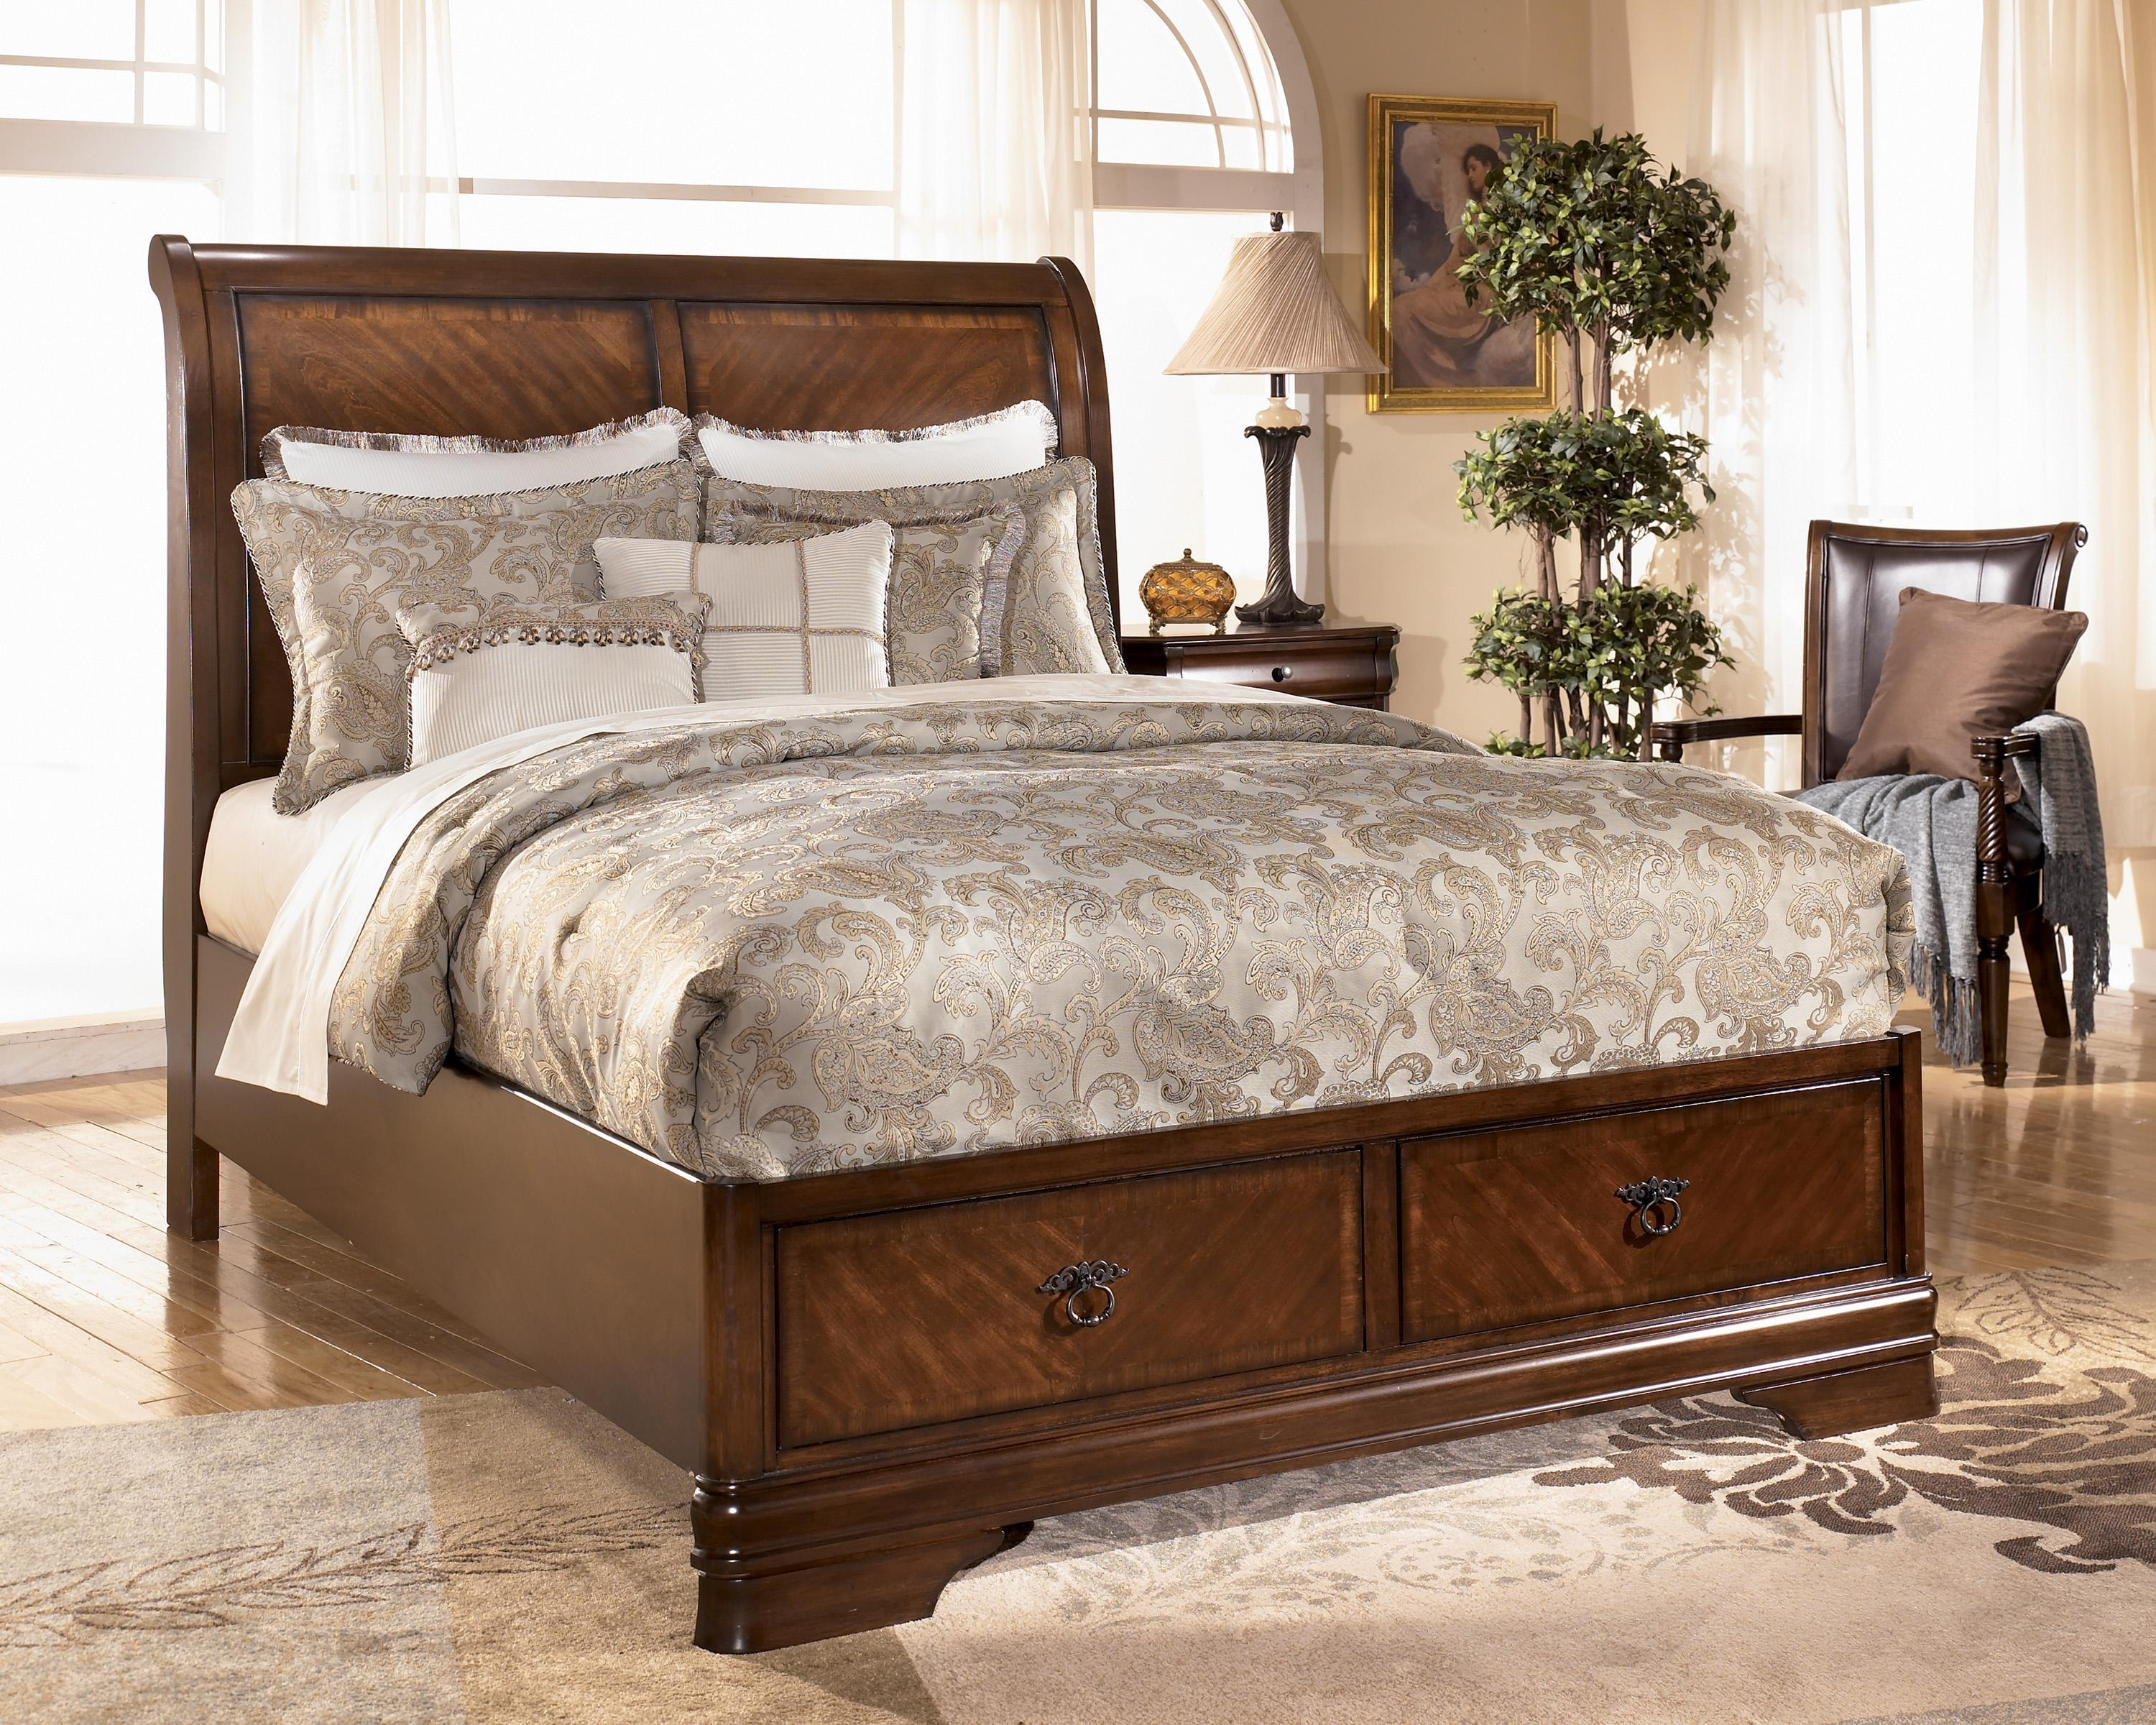 Home Decorating Pictures Storage Beds Ashley Furniture